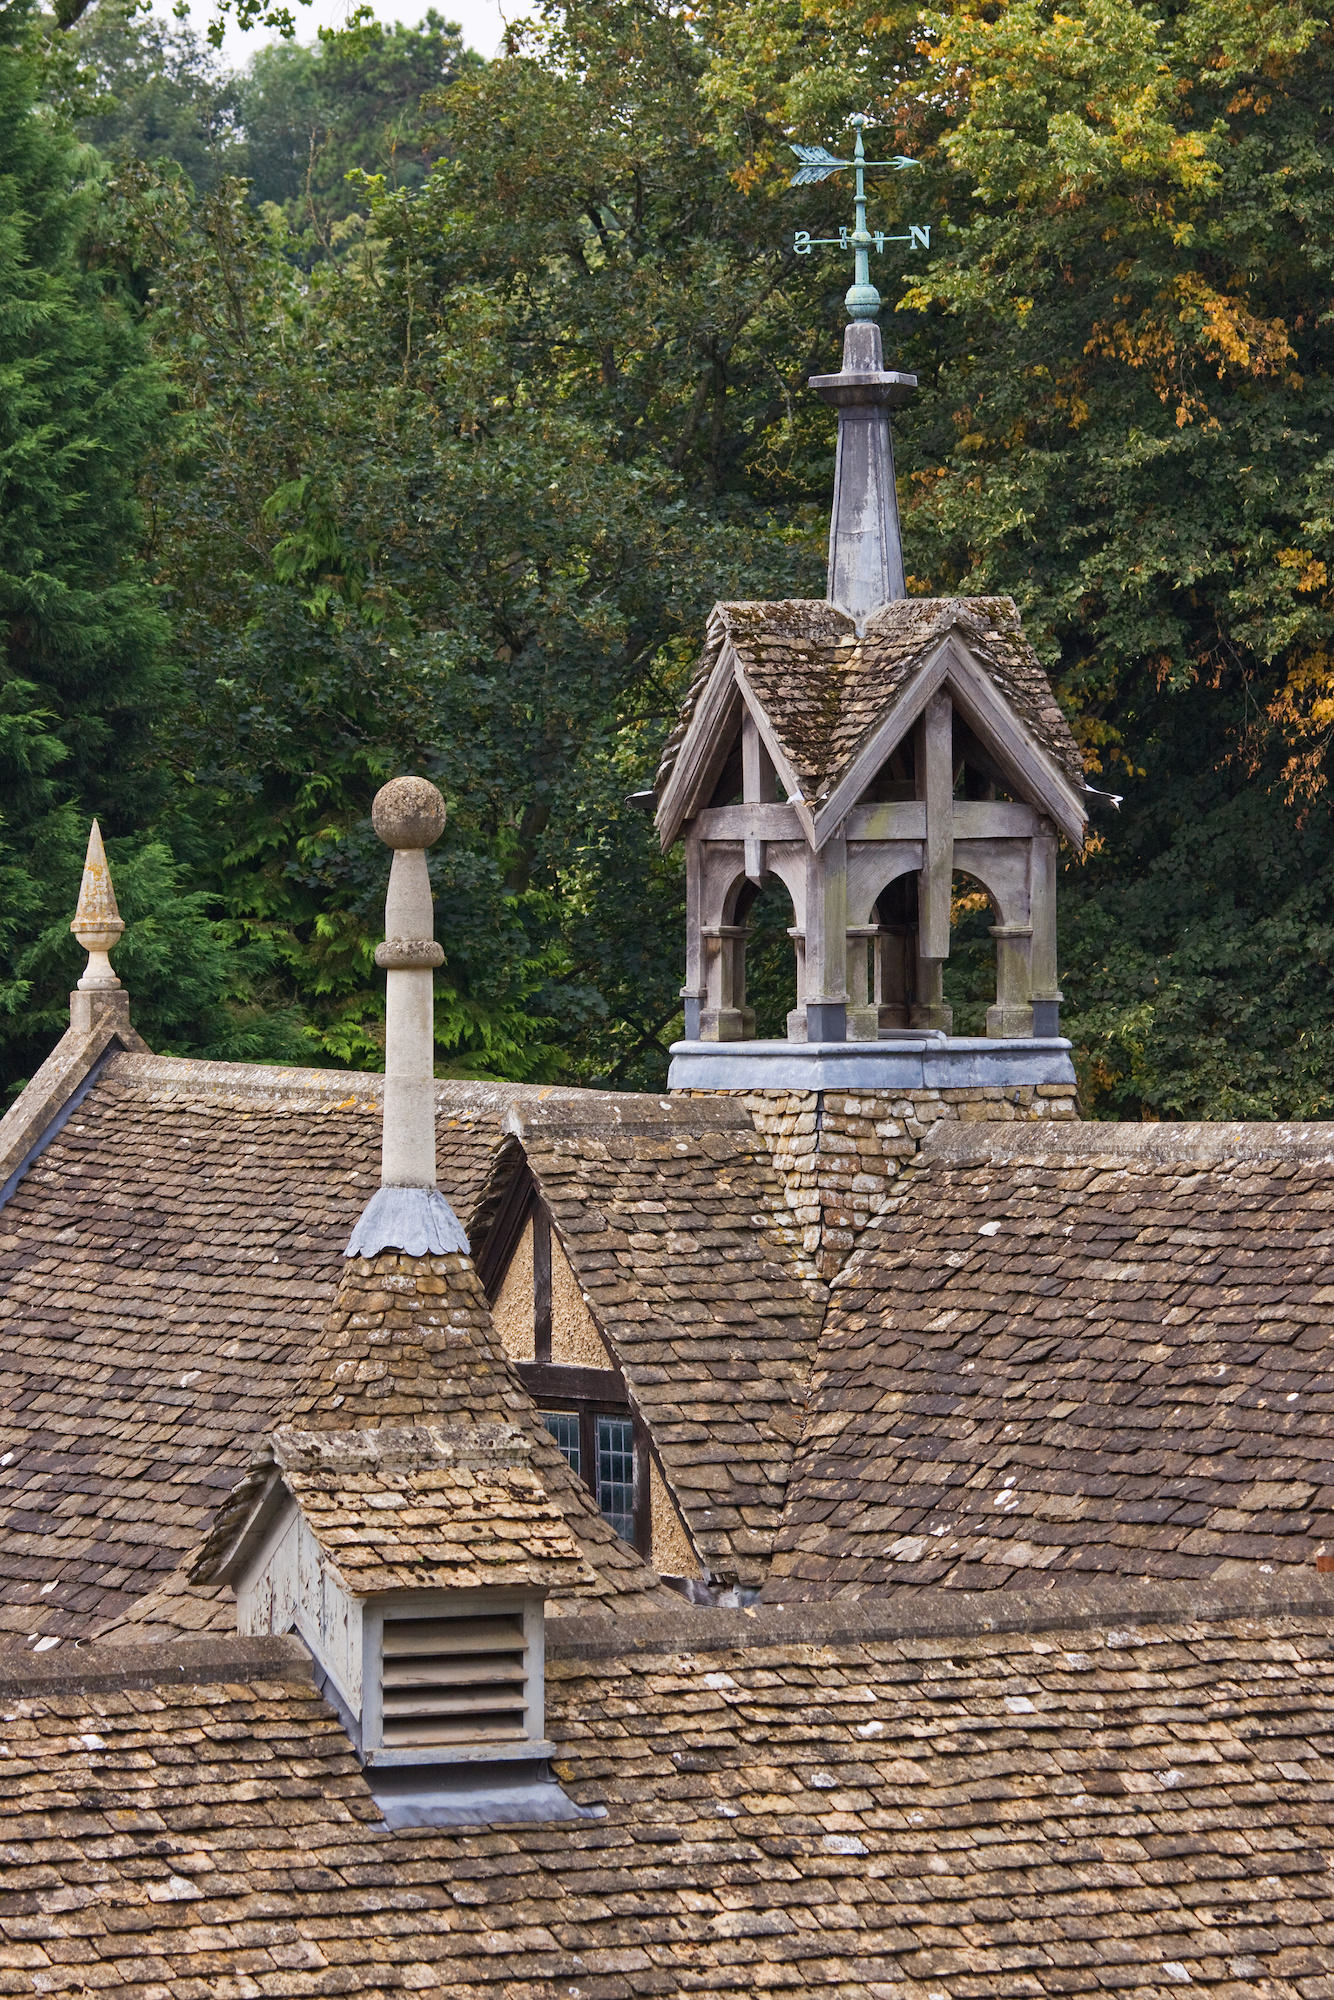 an image of 19th century stable roofs, located in Wiltshire UK